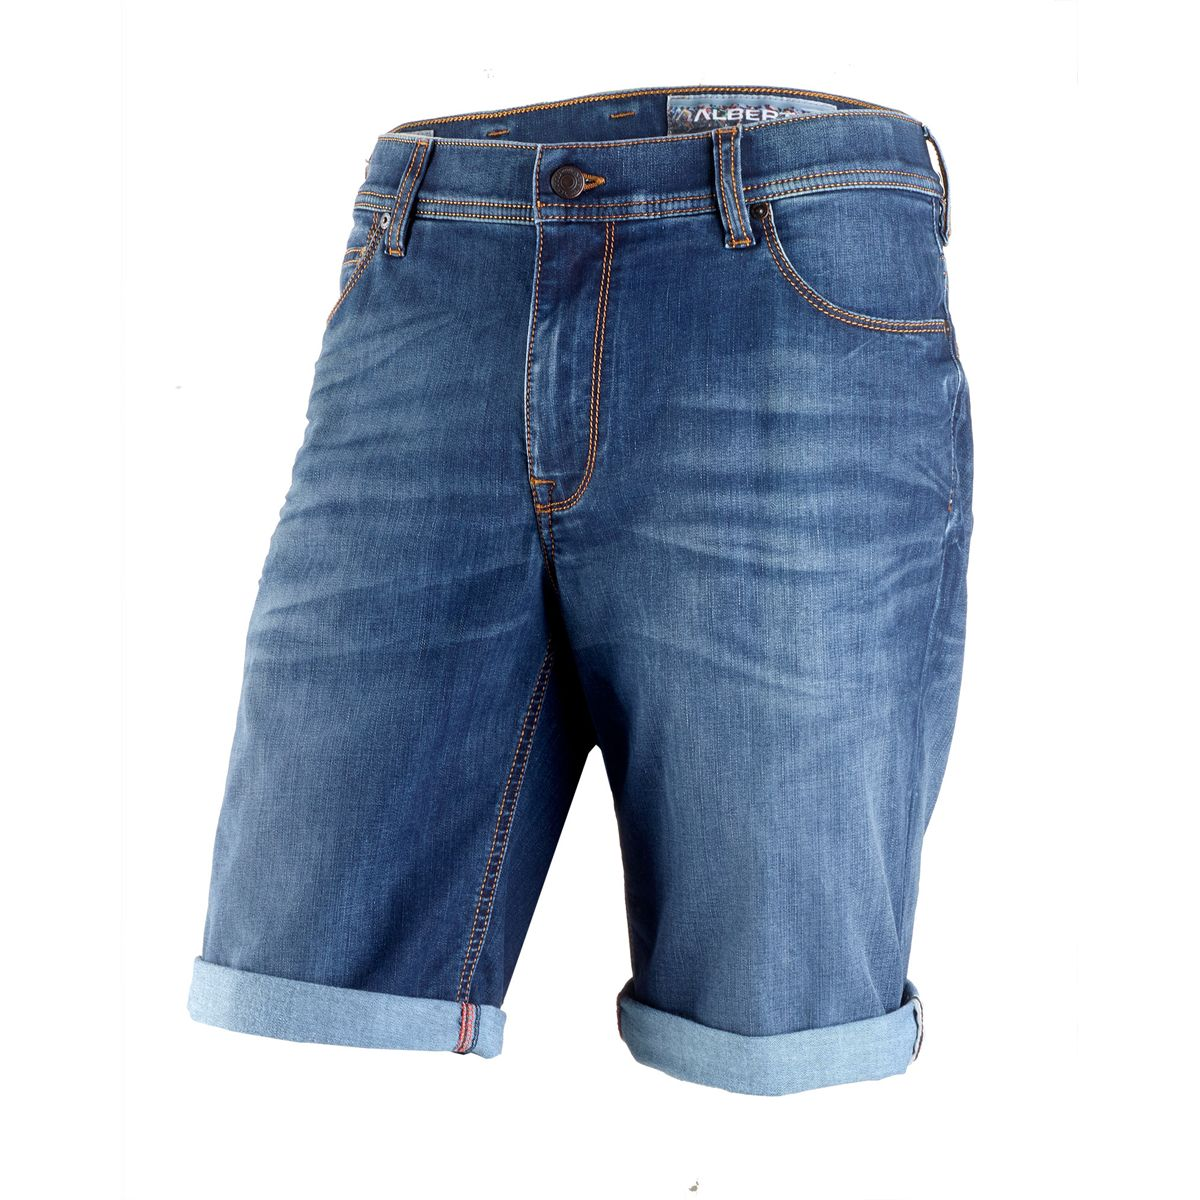 BIKE Coolmax Denim Jeans Short